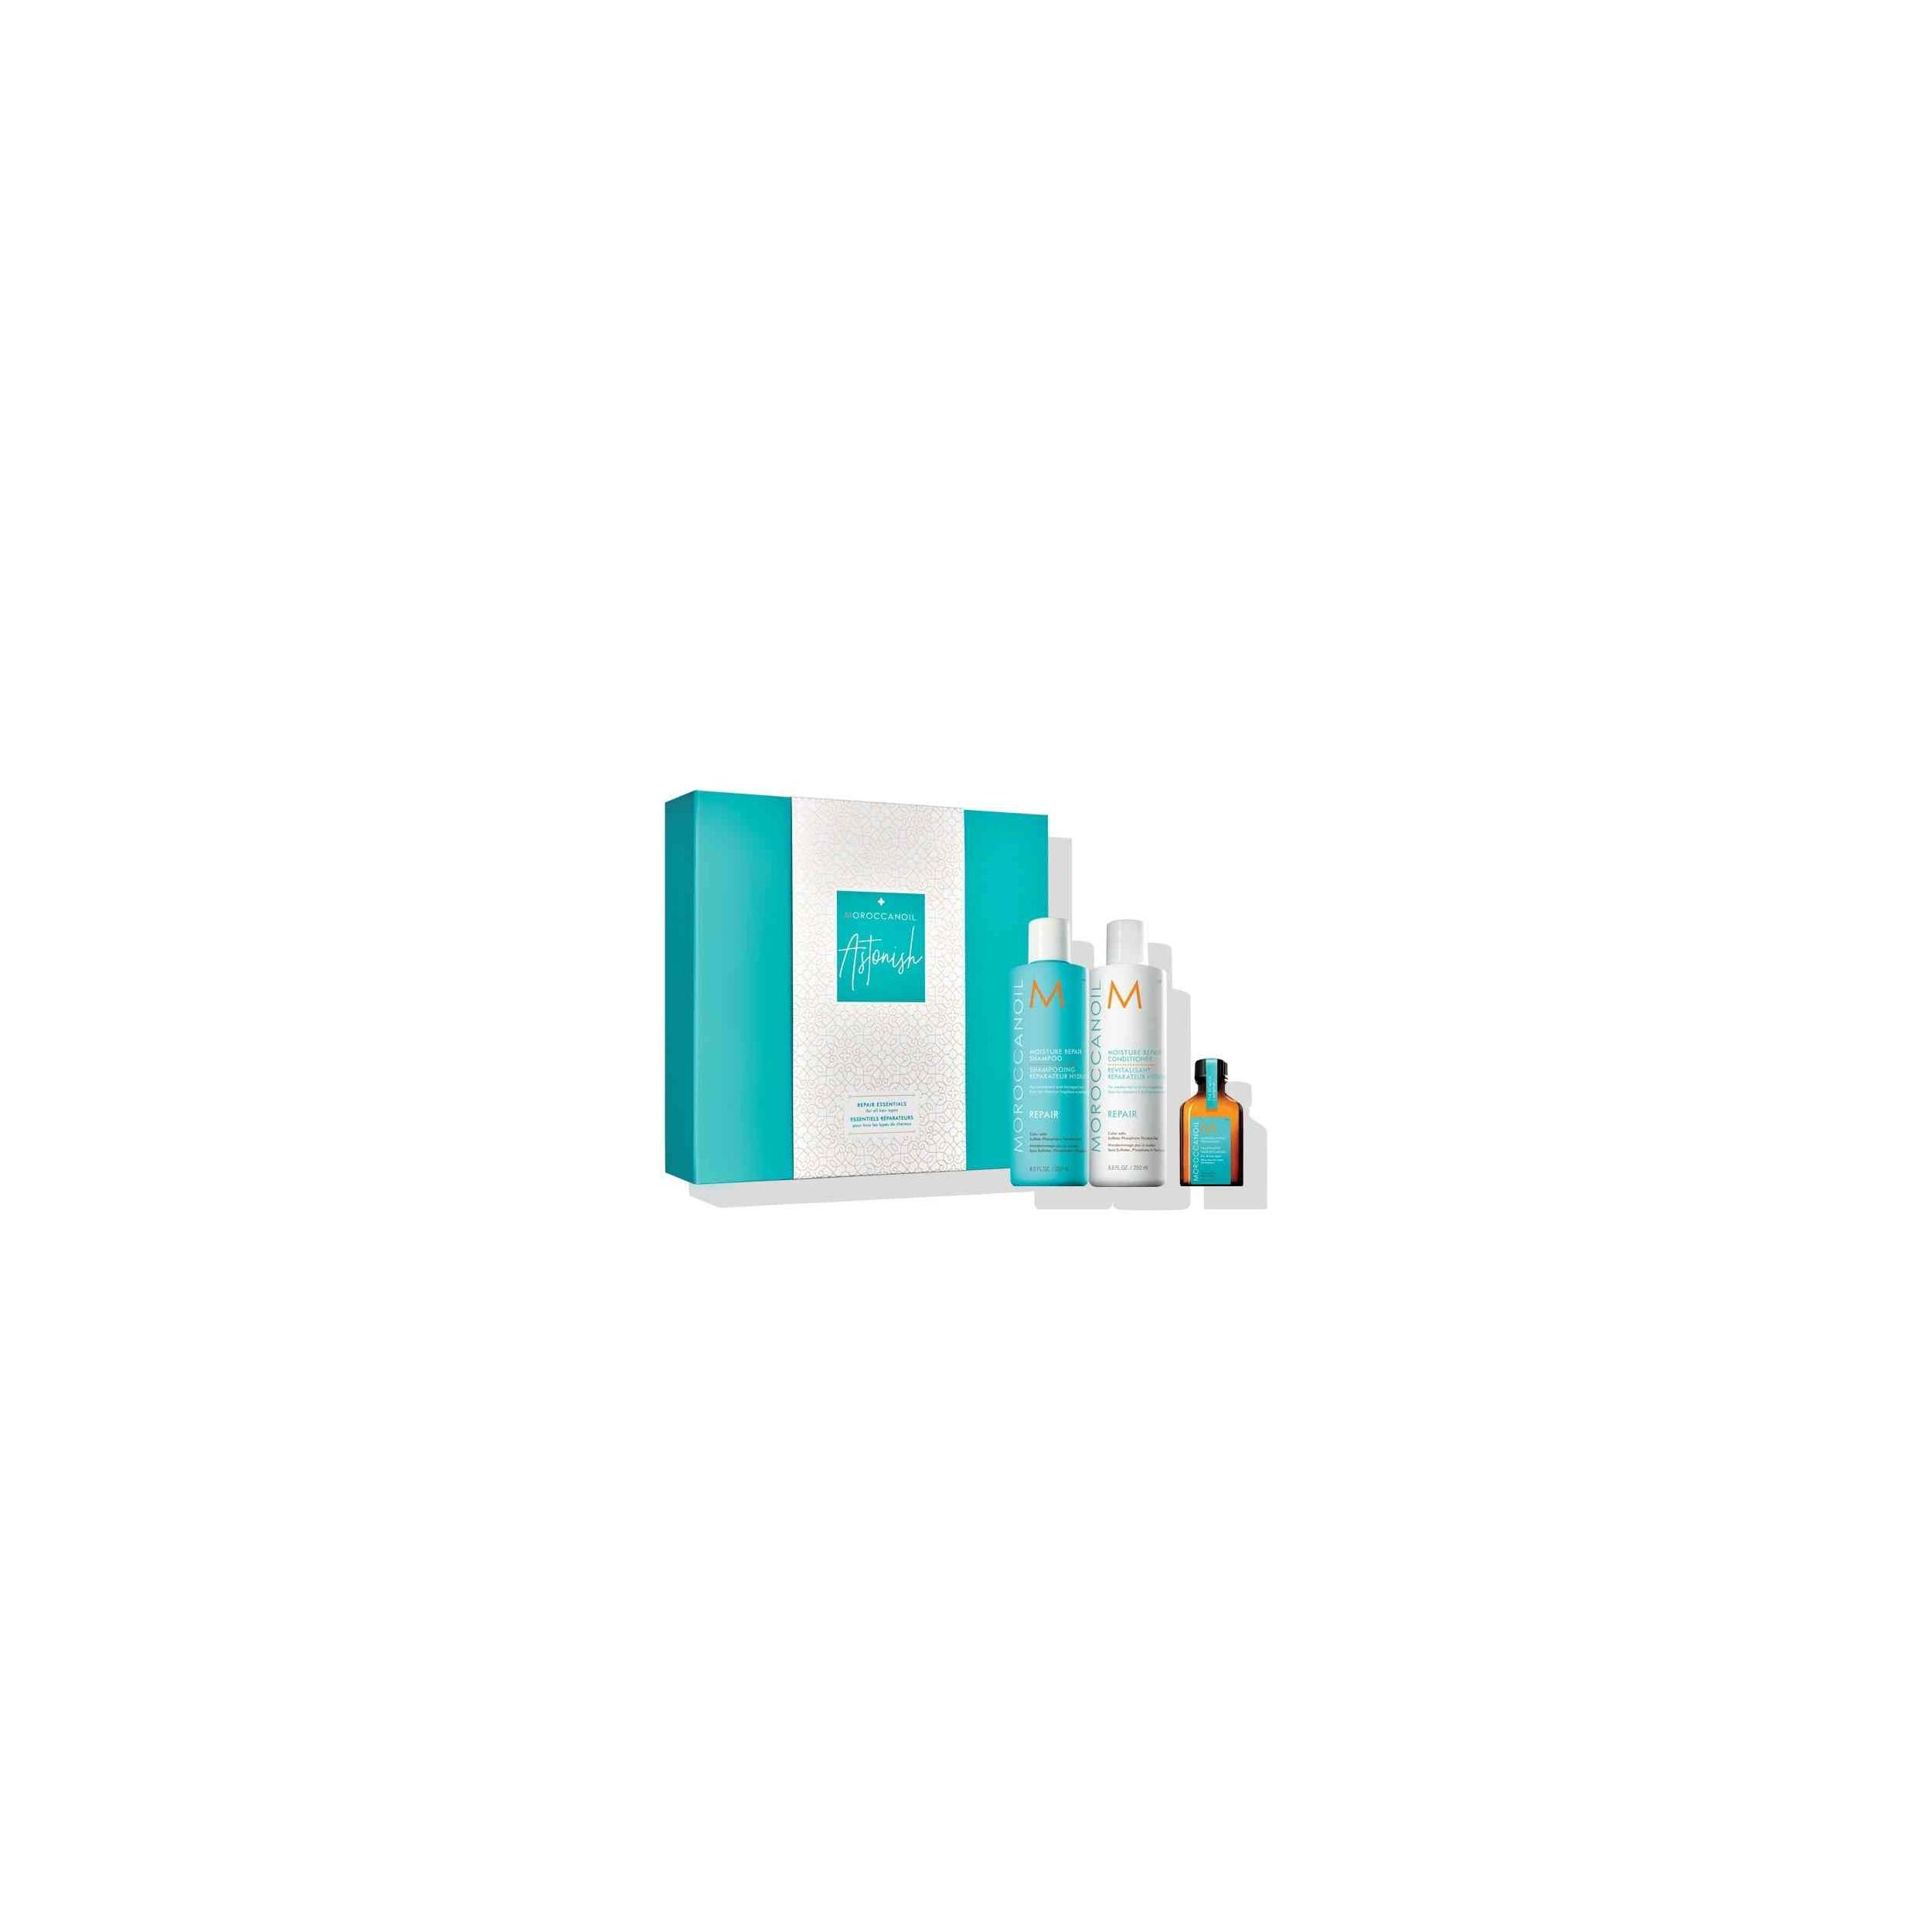 Moroccanoil Repair Astonish Set - Набор Восстановление